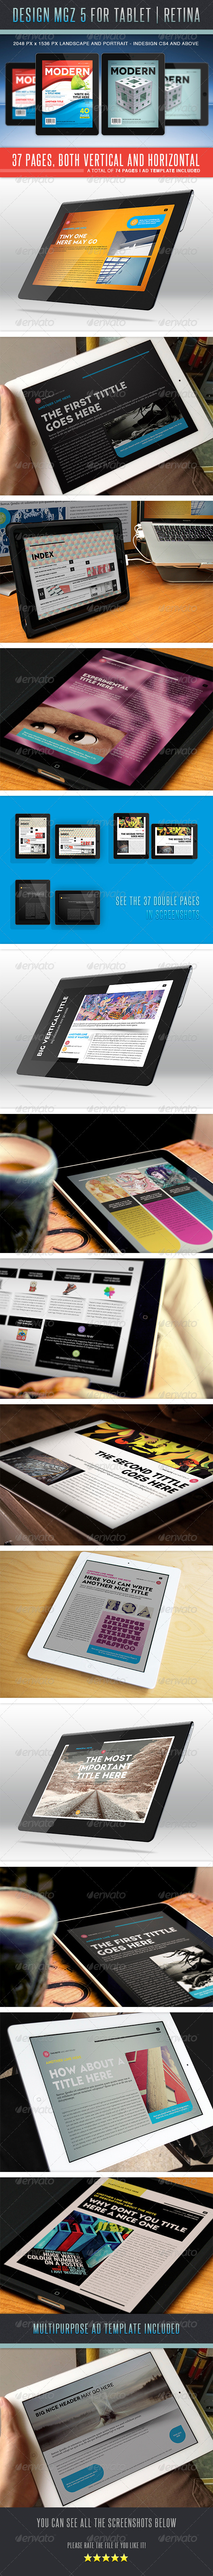 Design MGZ 5 for Tablet - Digital Magazines ePublishing